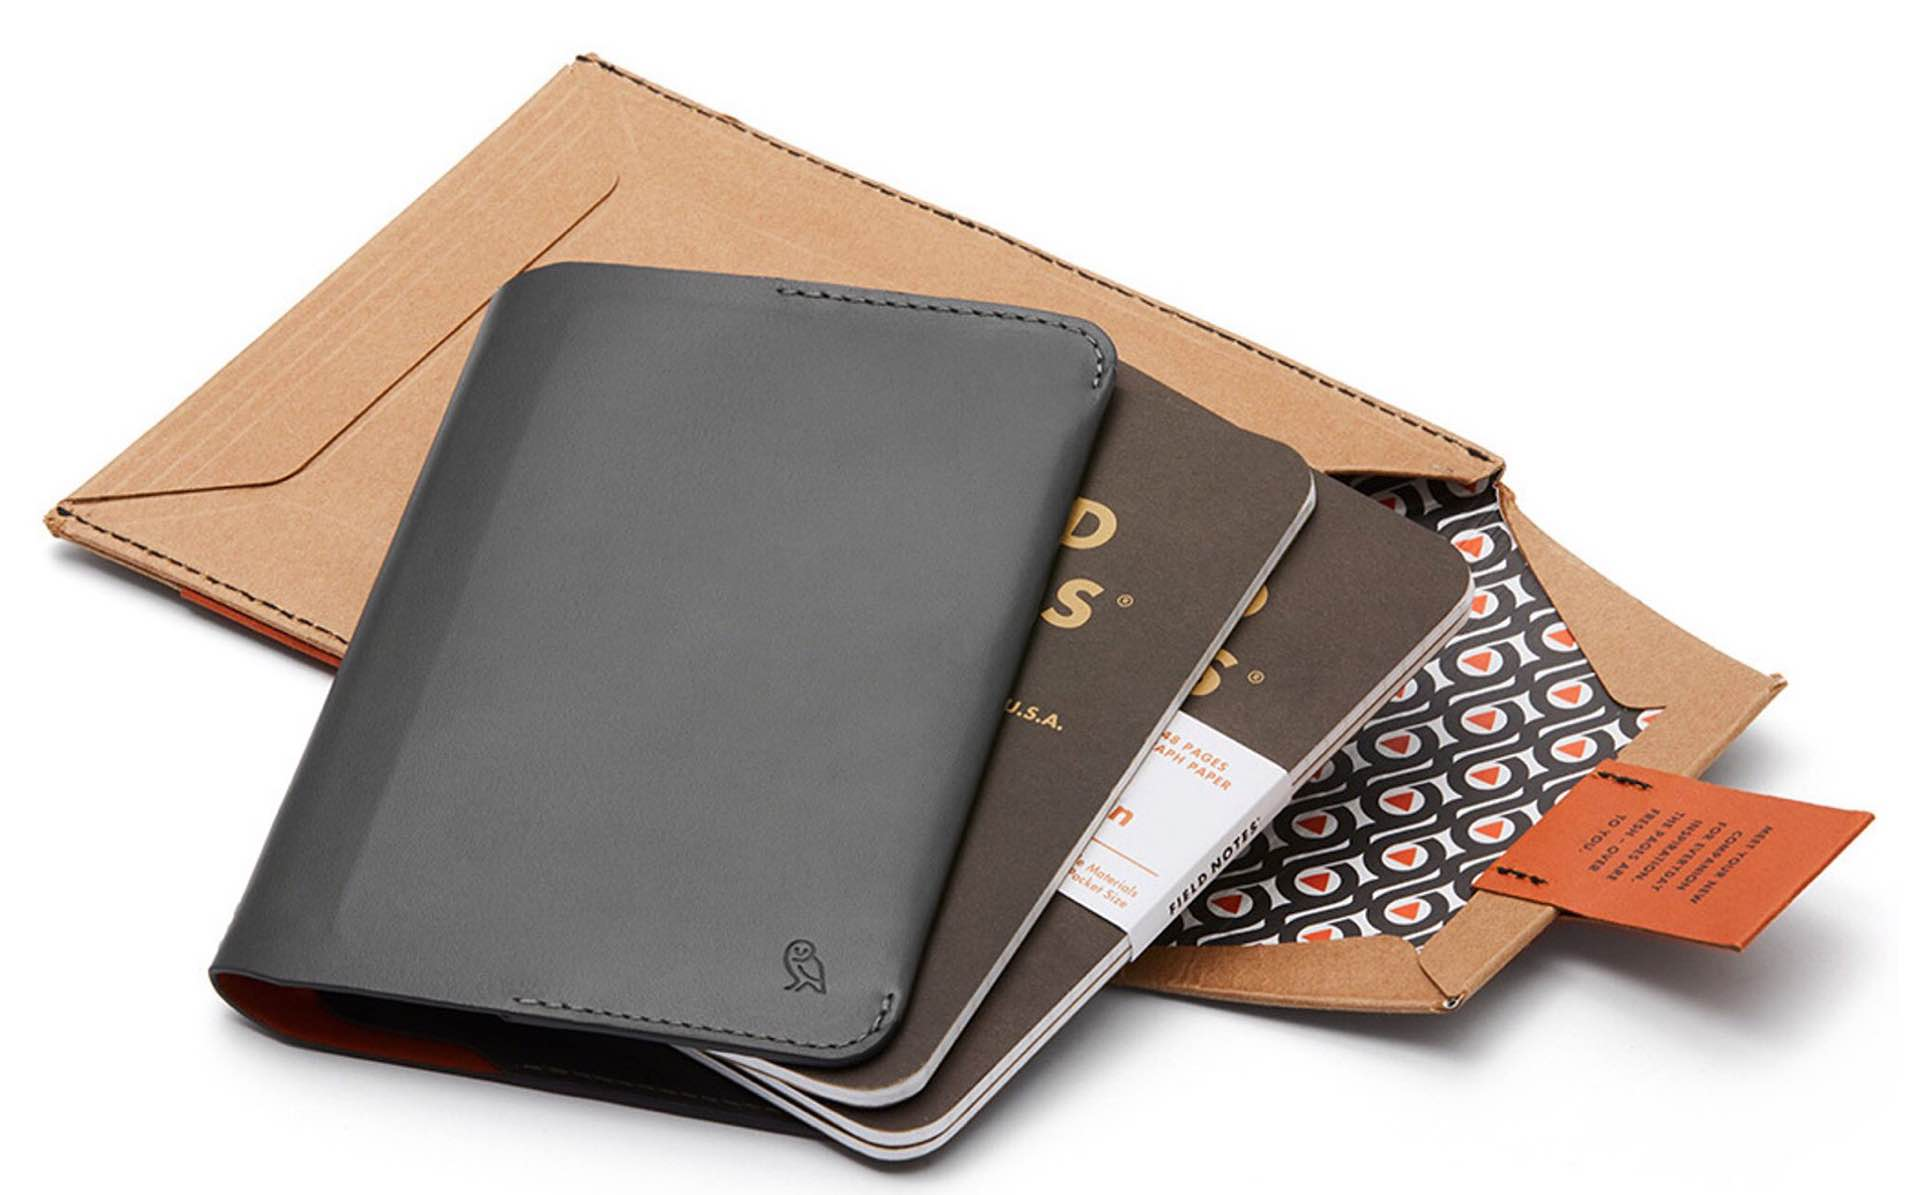 field-notes-bellroy-everyday-inspiration-leather-cover-and-memo-books